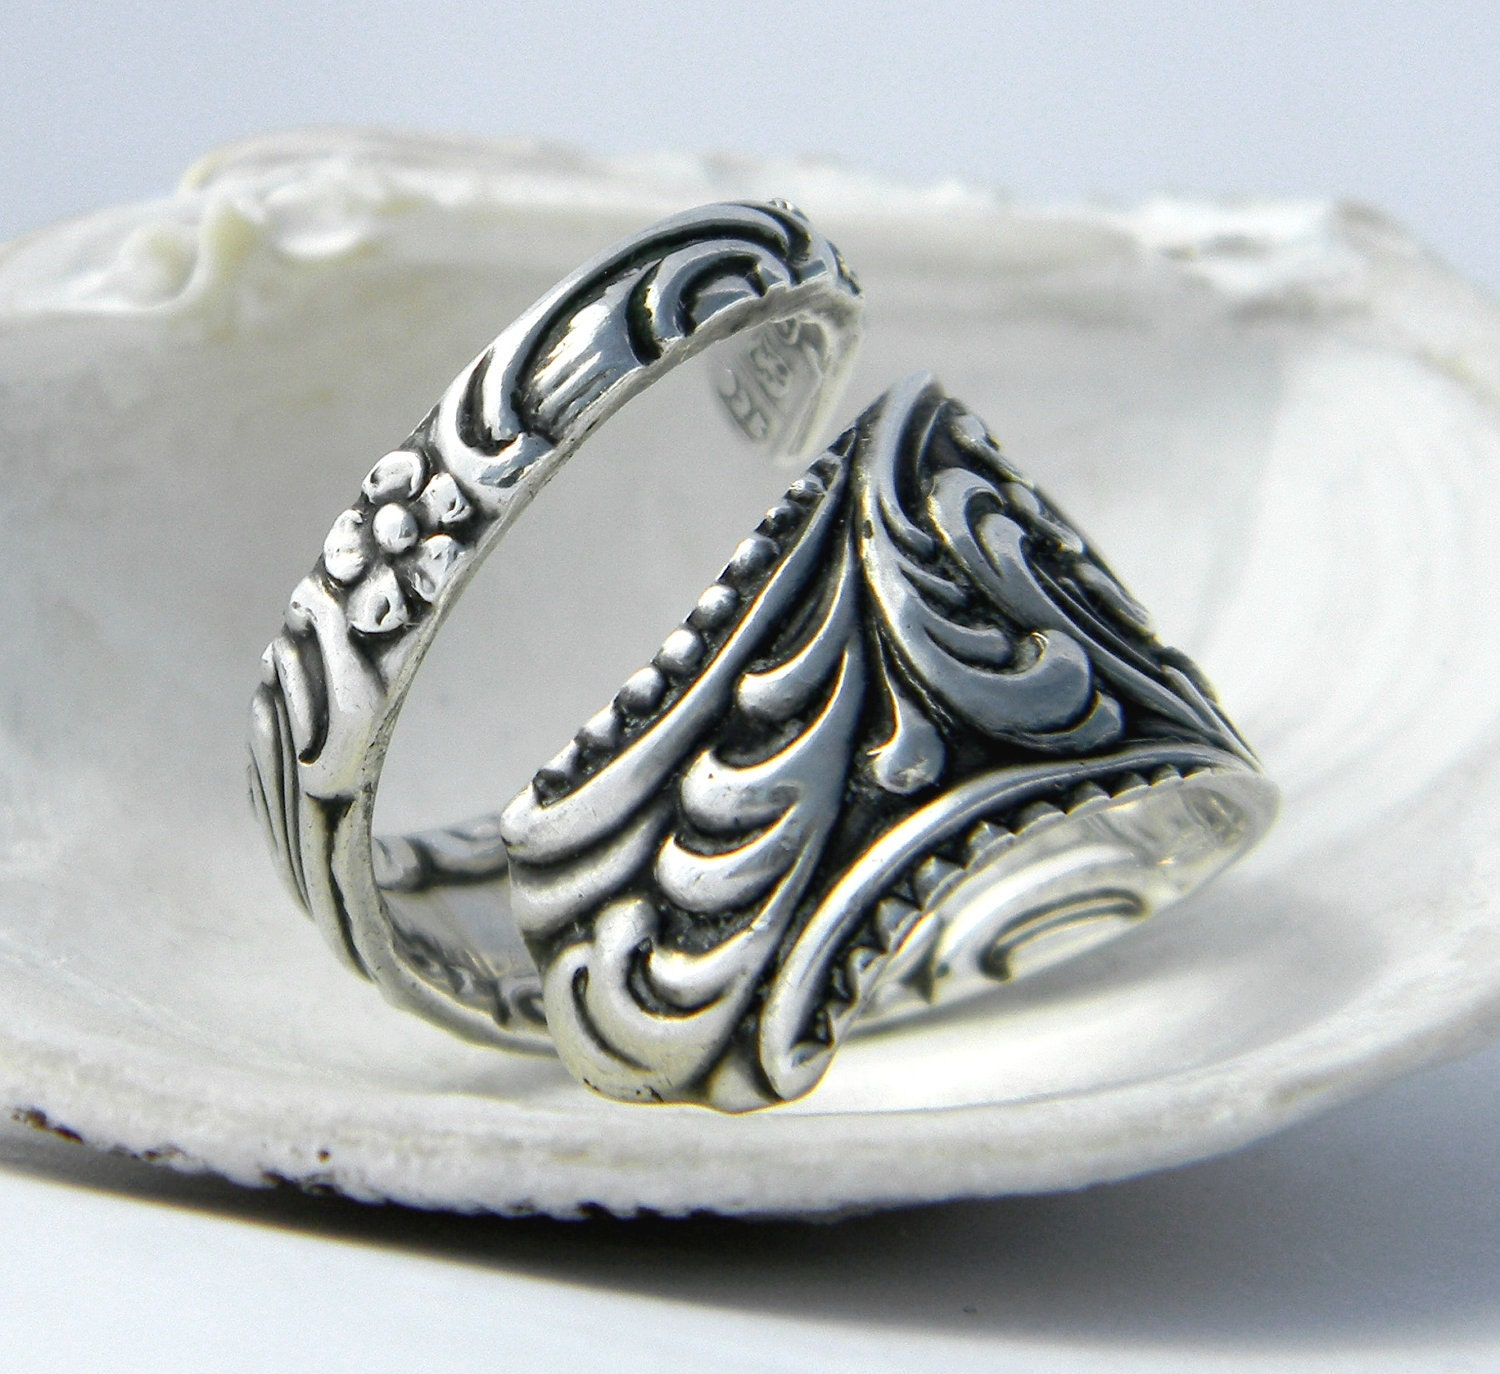 sterling silver spoon ring nouveau scroll floral